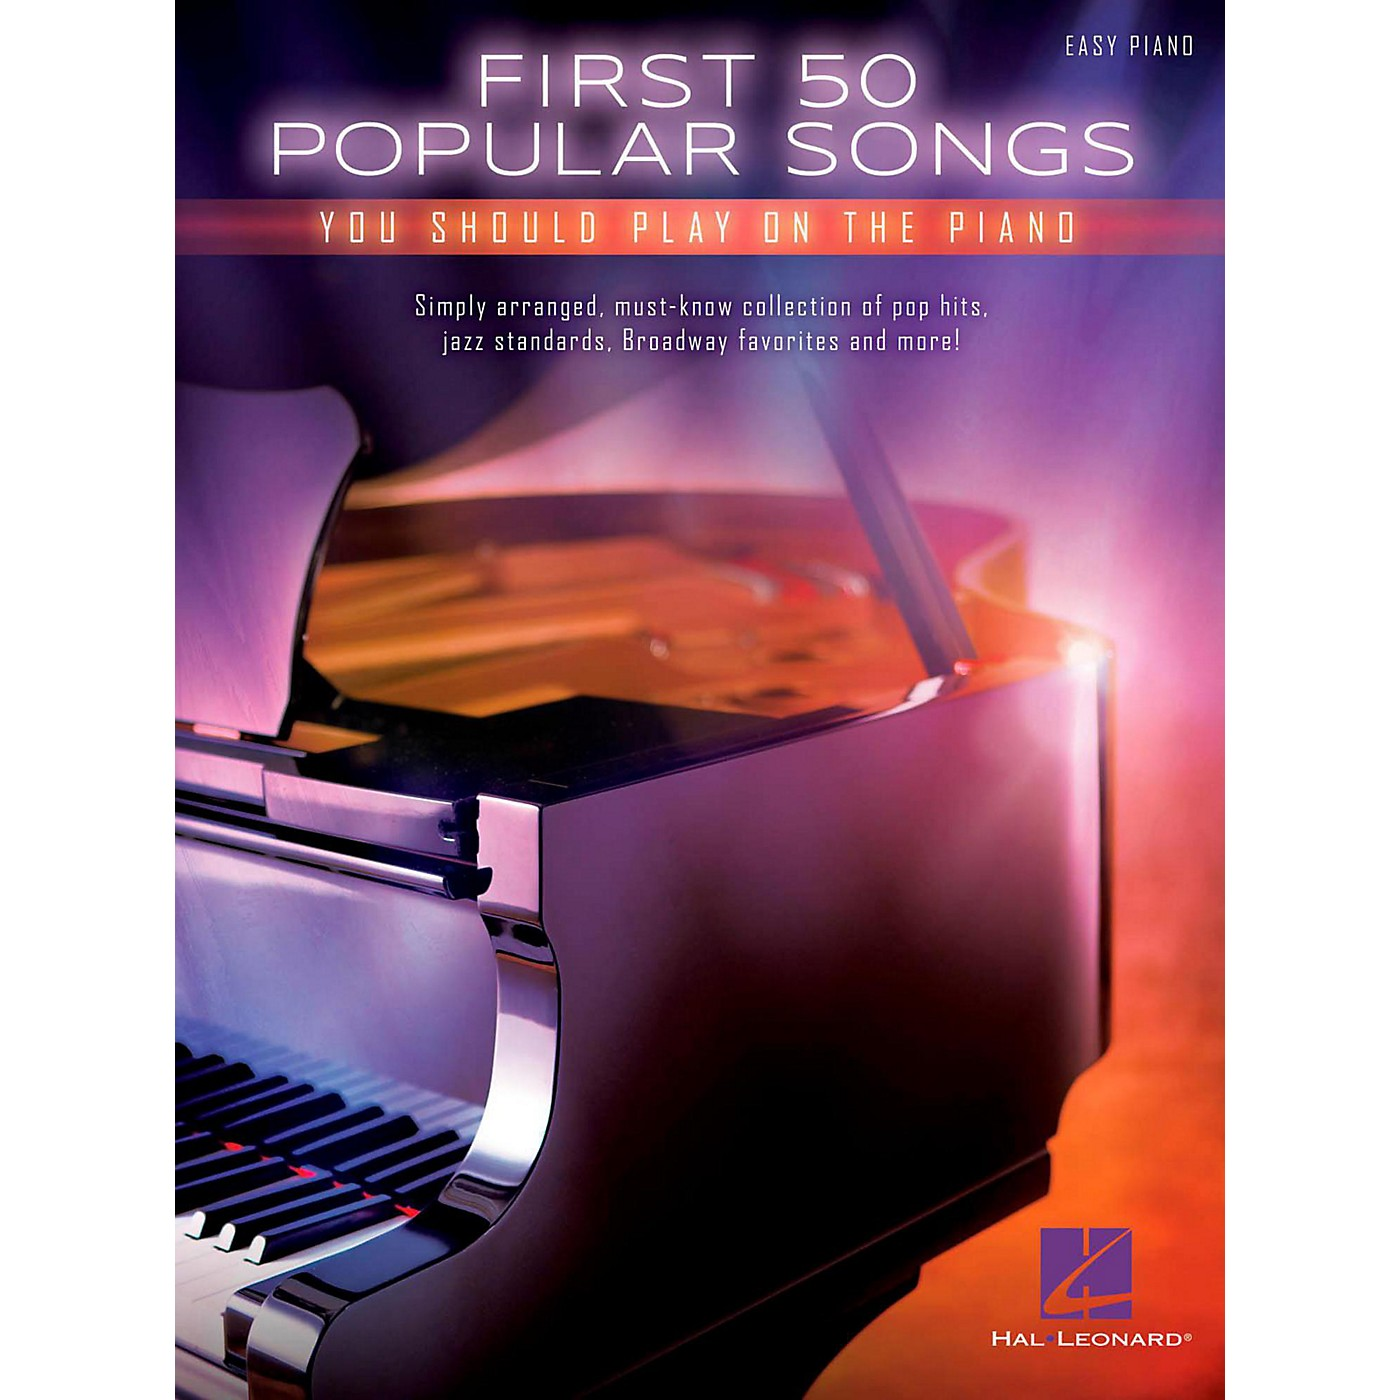 Hal Leonard First 50 Popular Songs You Should Play On The Piano (Easy Piano Notation) thumbnail